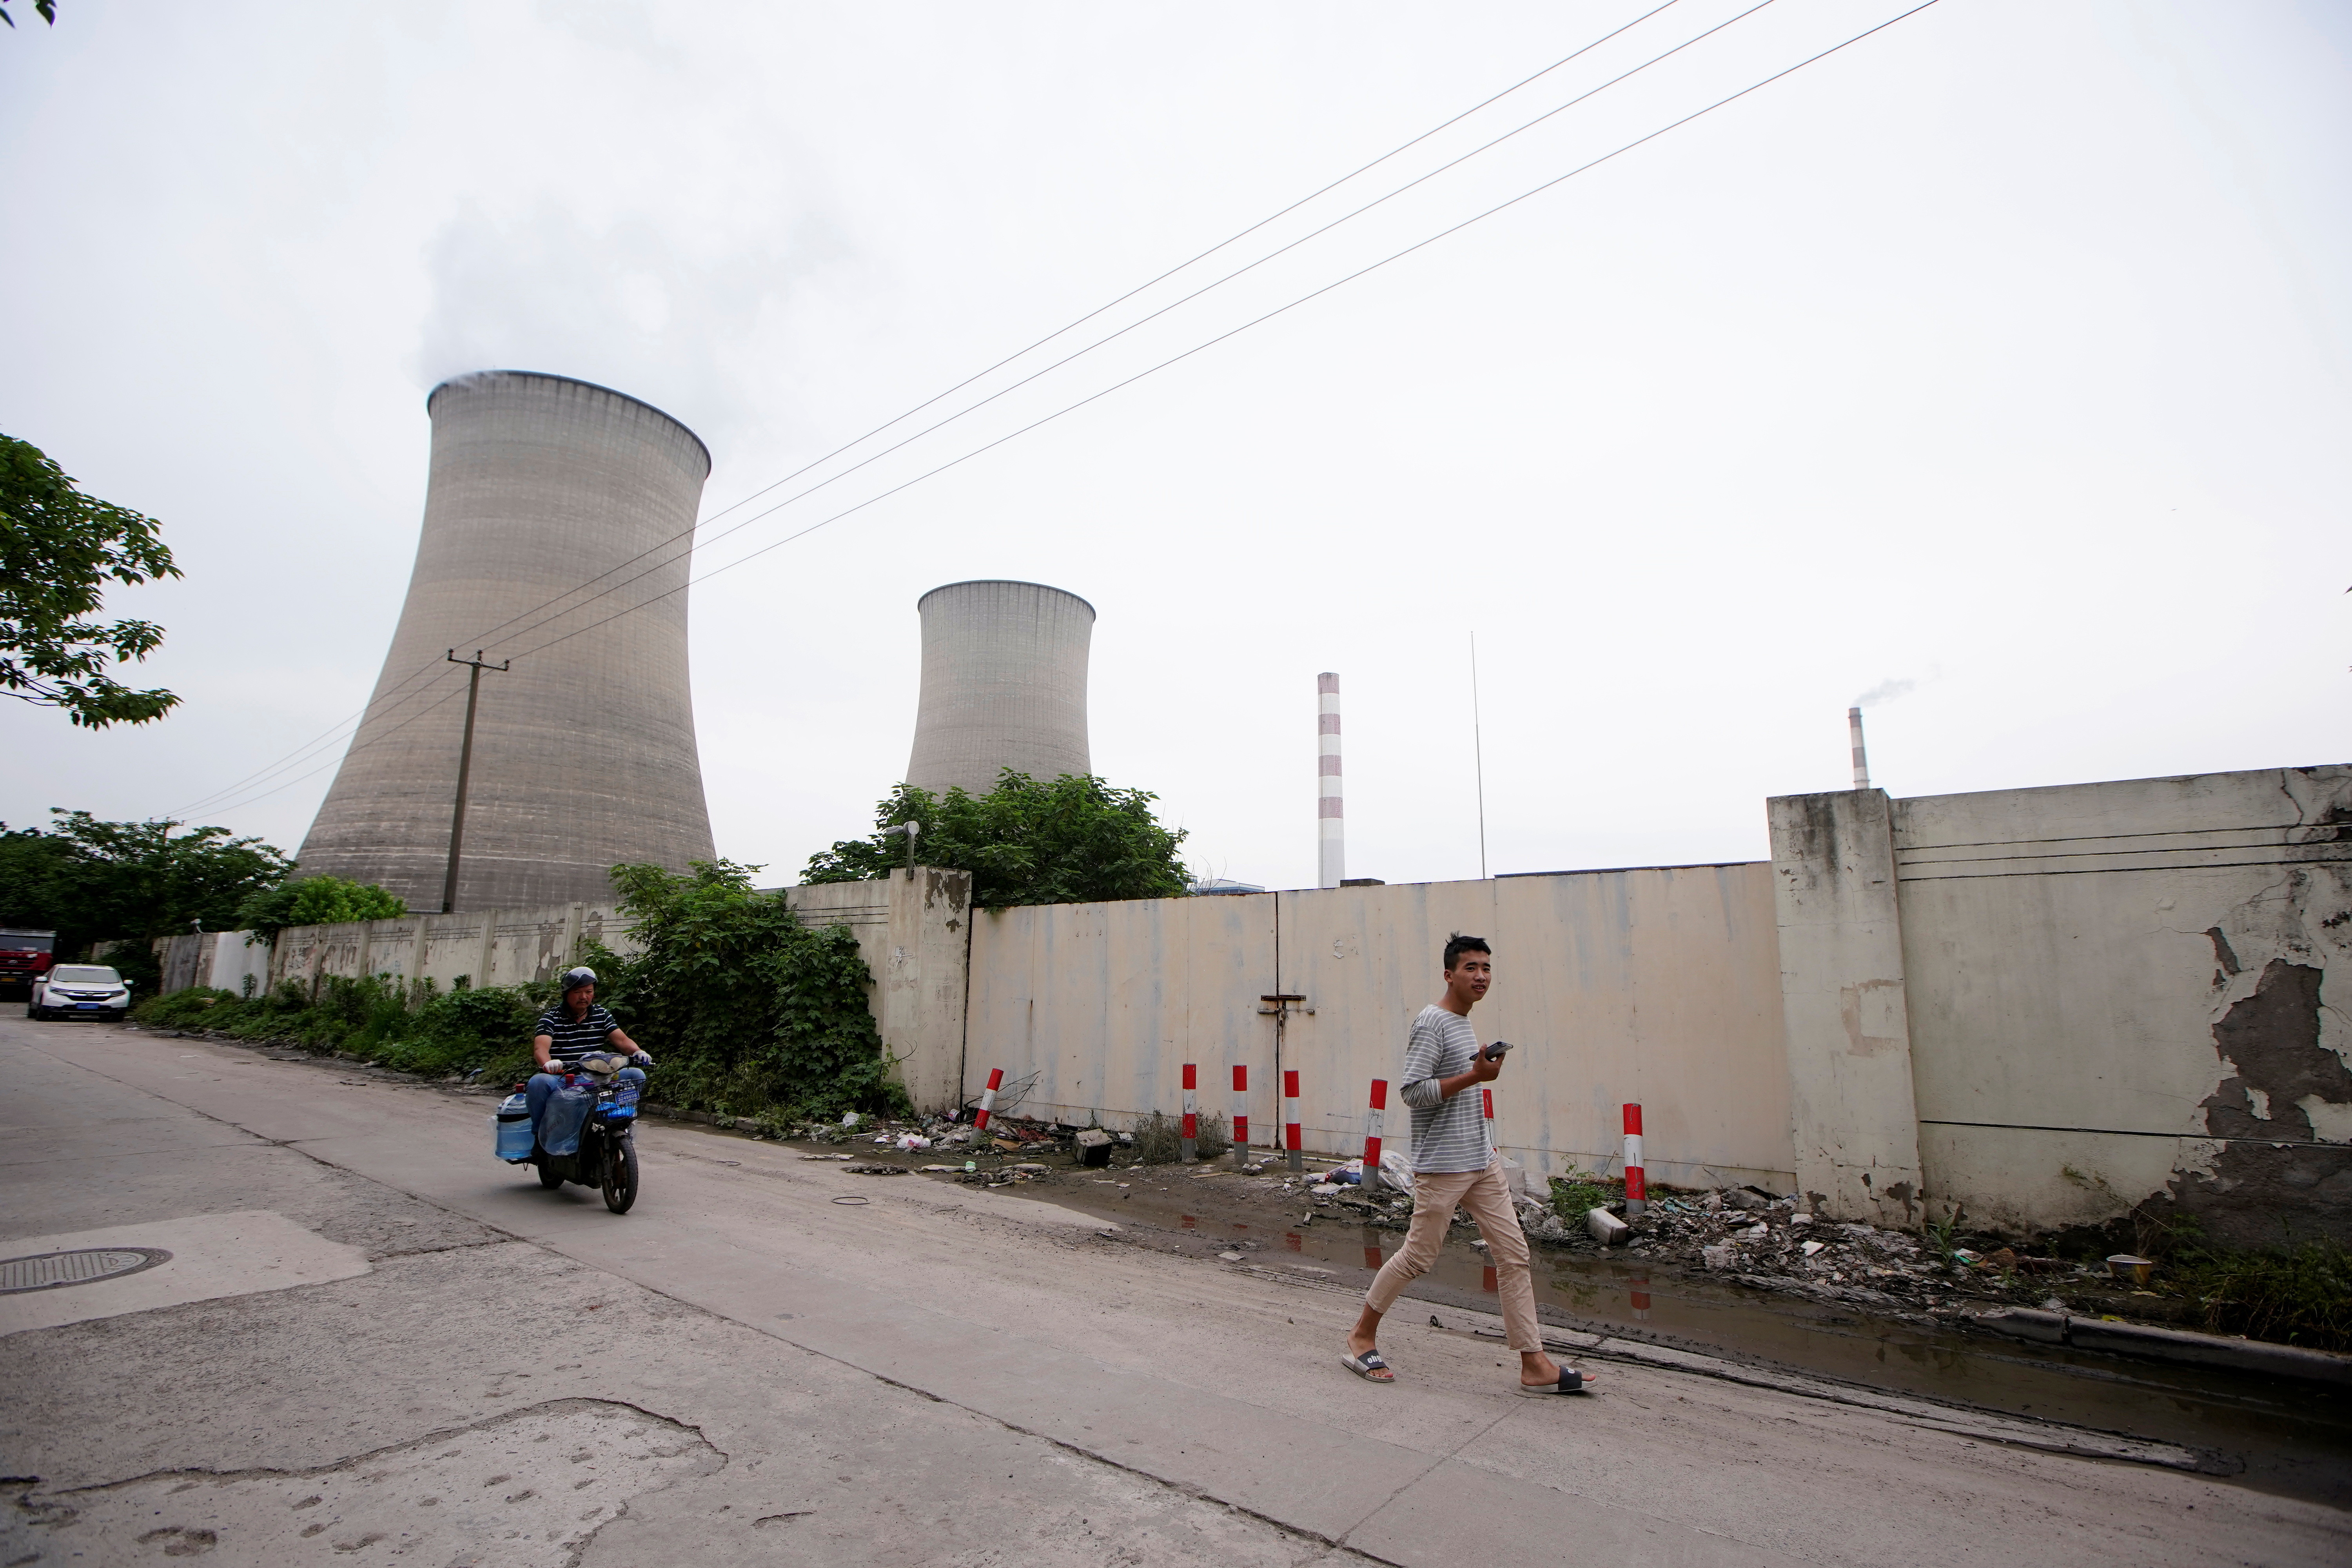 A man walks past a coal-fired power plant in Shanghai, China, May 28, 2021.